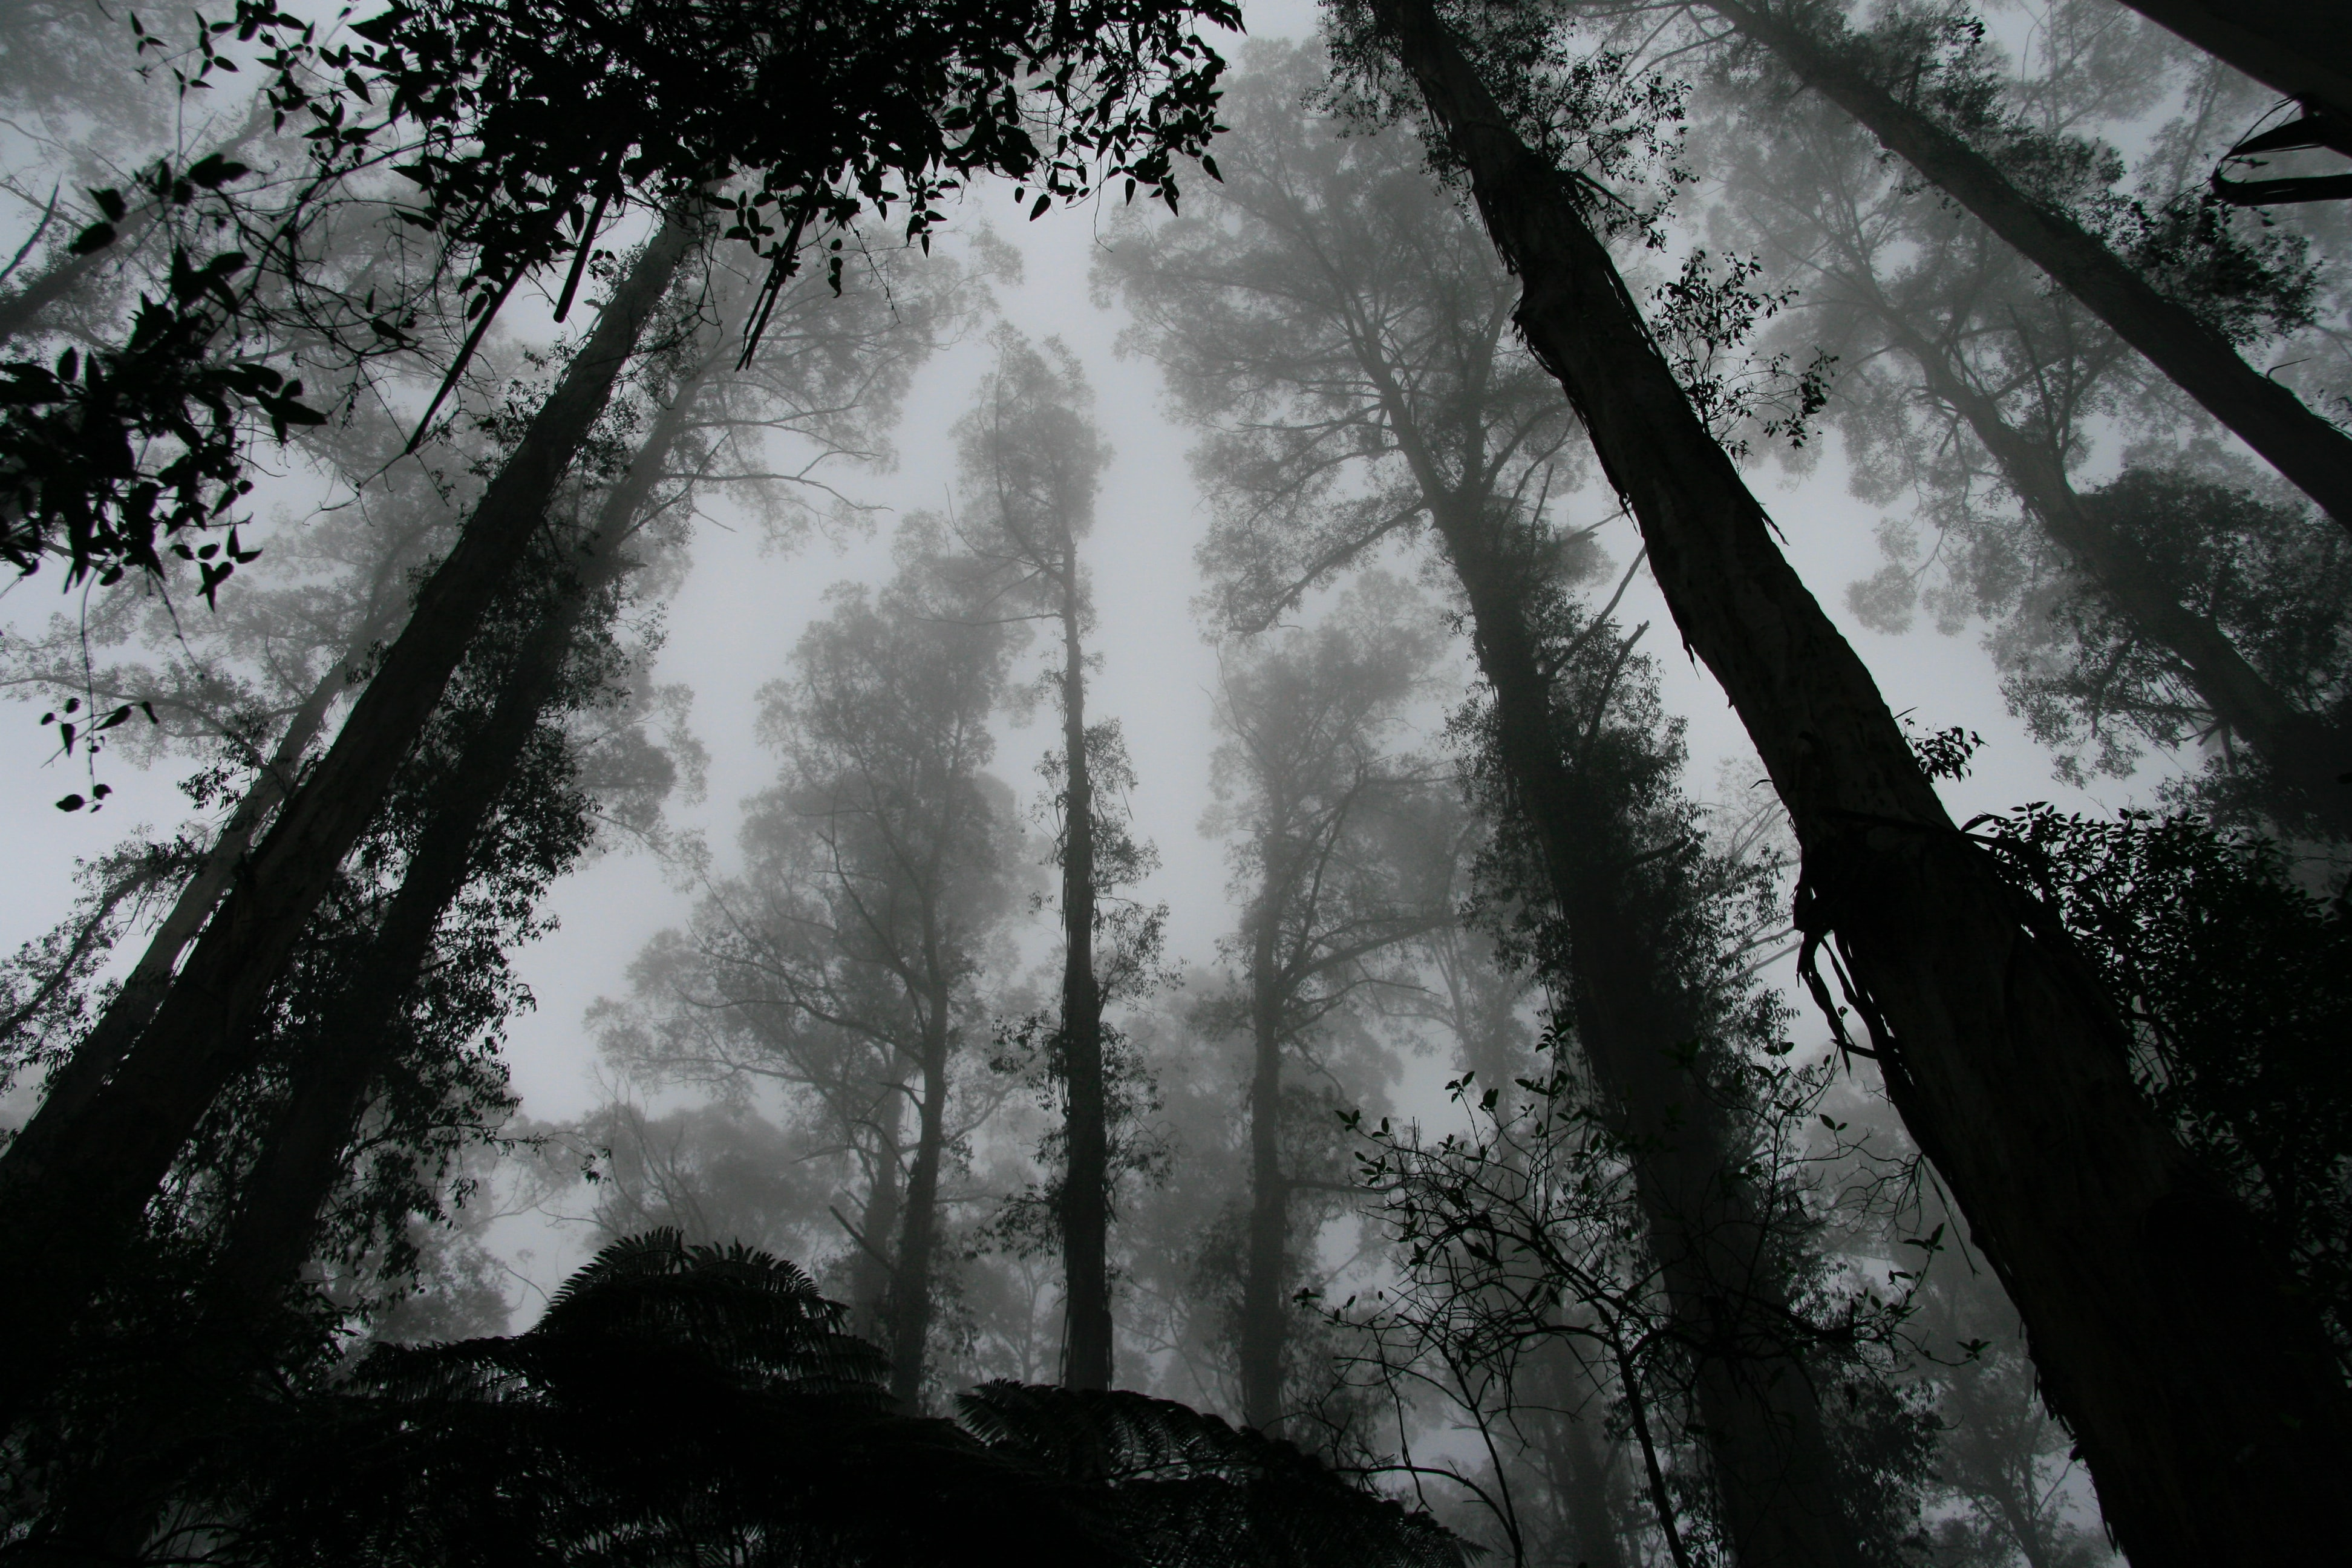 A dark low-angle shot of towering trees in the middle of the forest